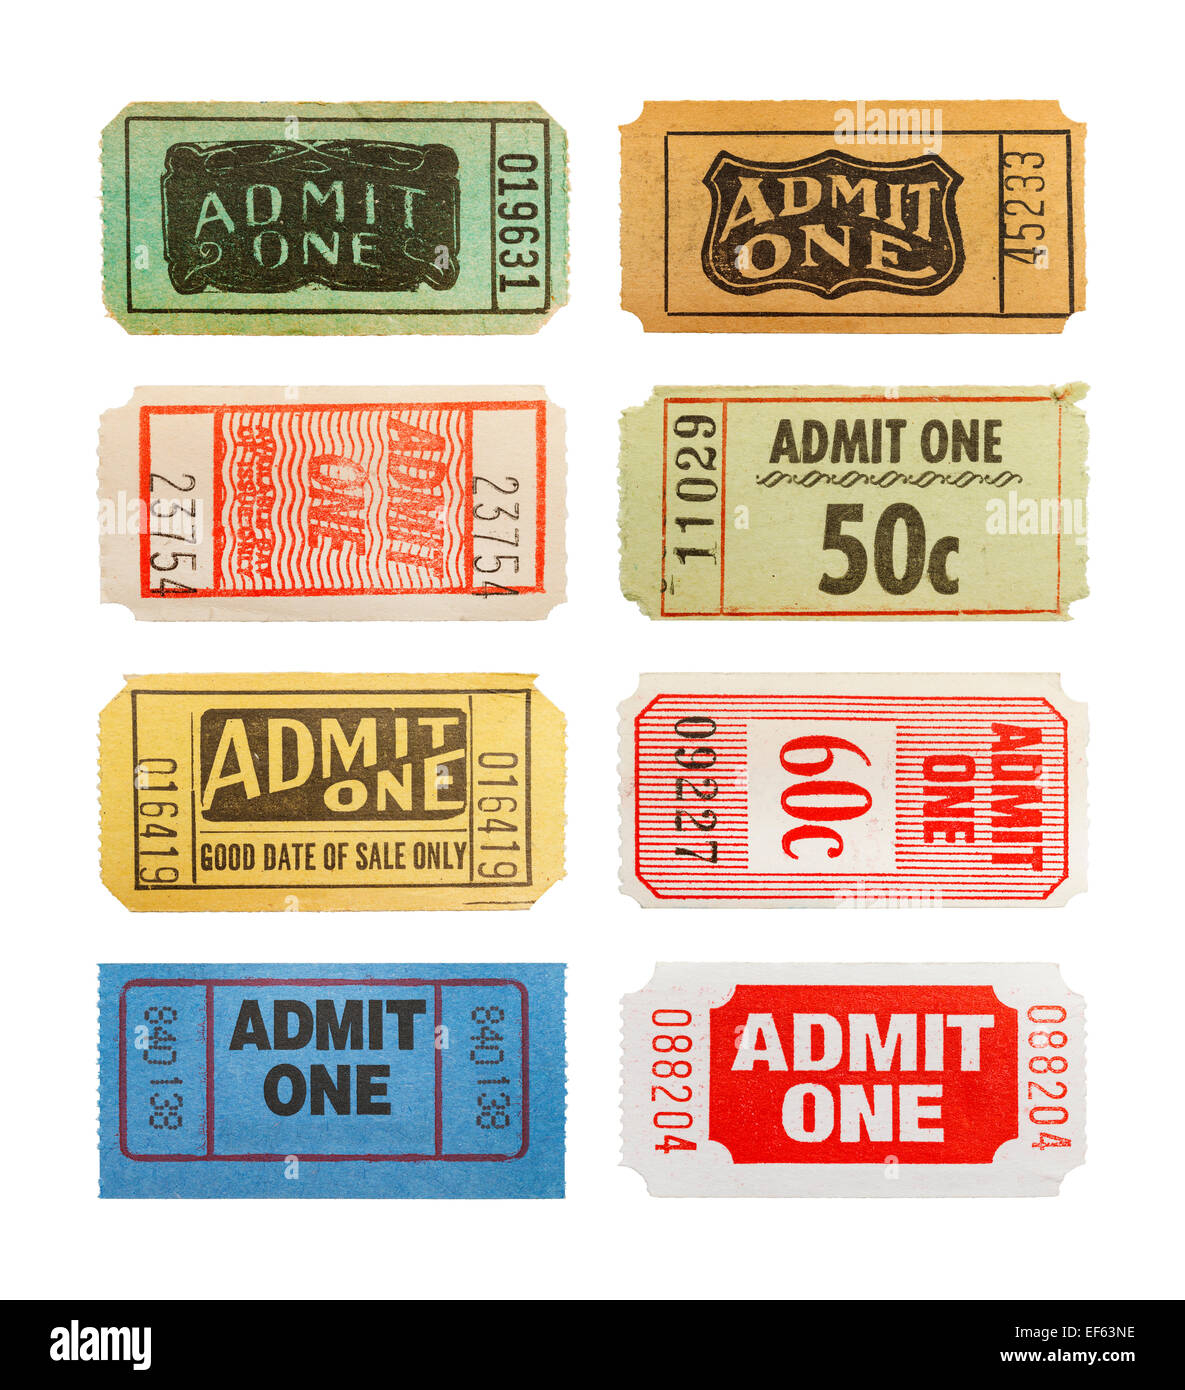 Selection Of Different Old Admit One Tickets Isolated on White Background. - Stock Image